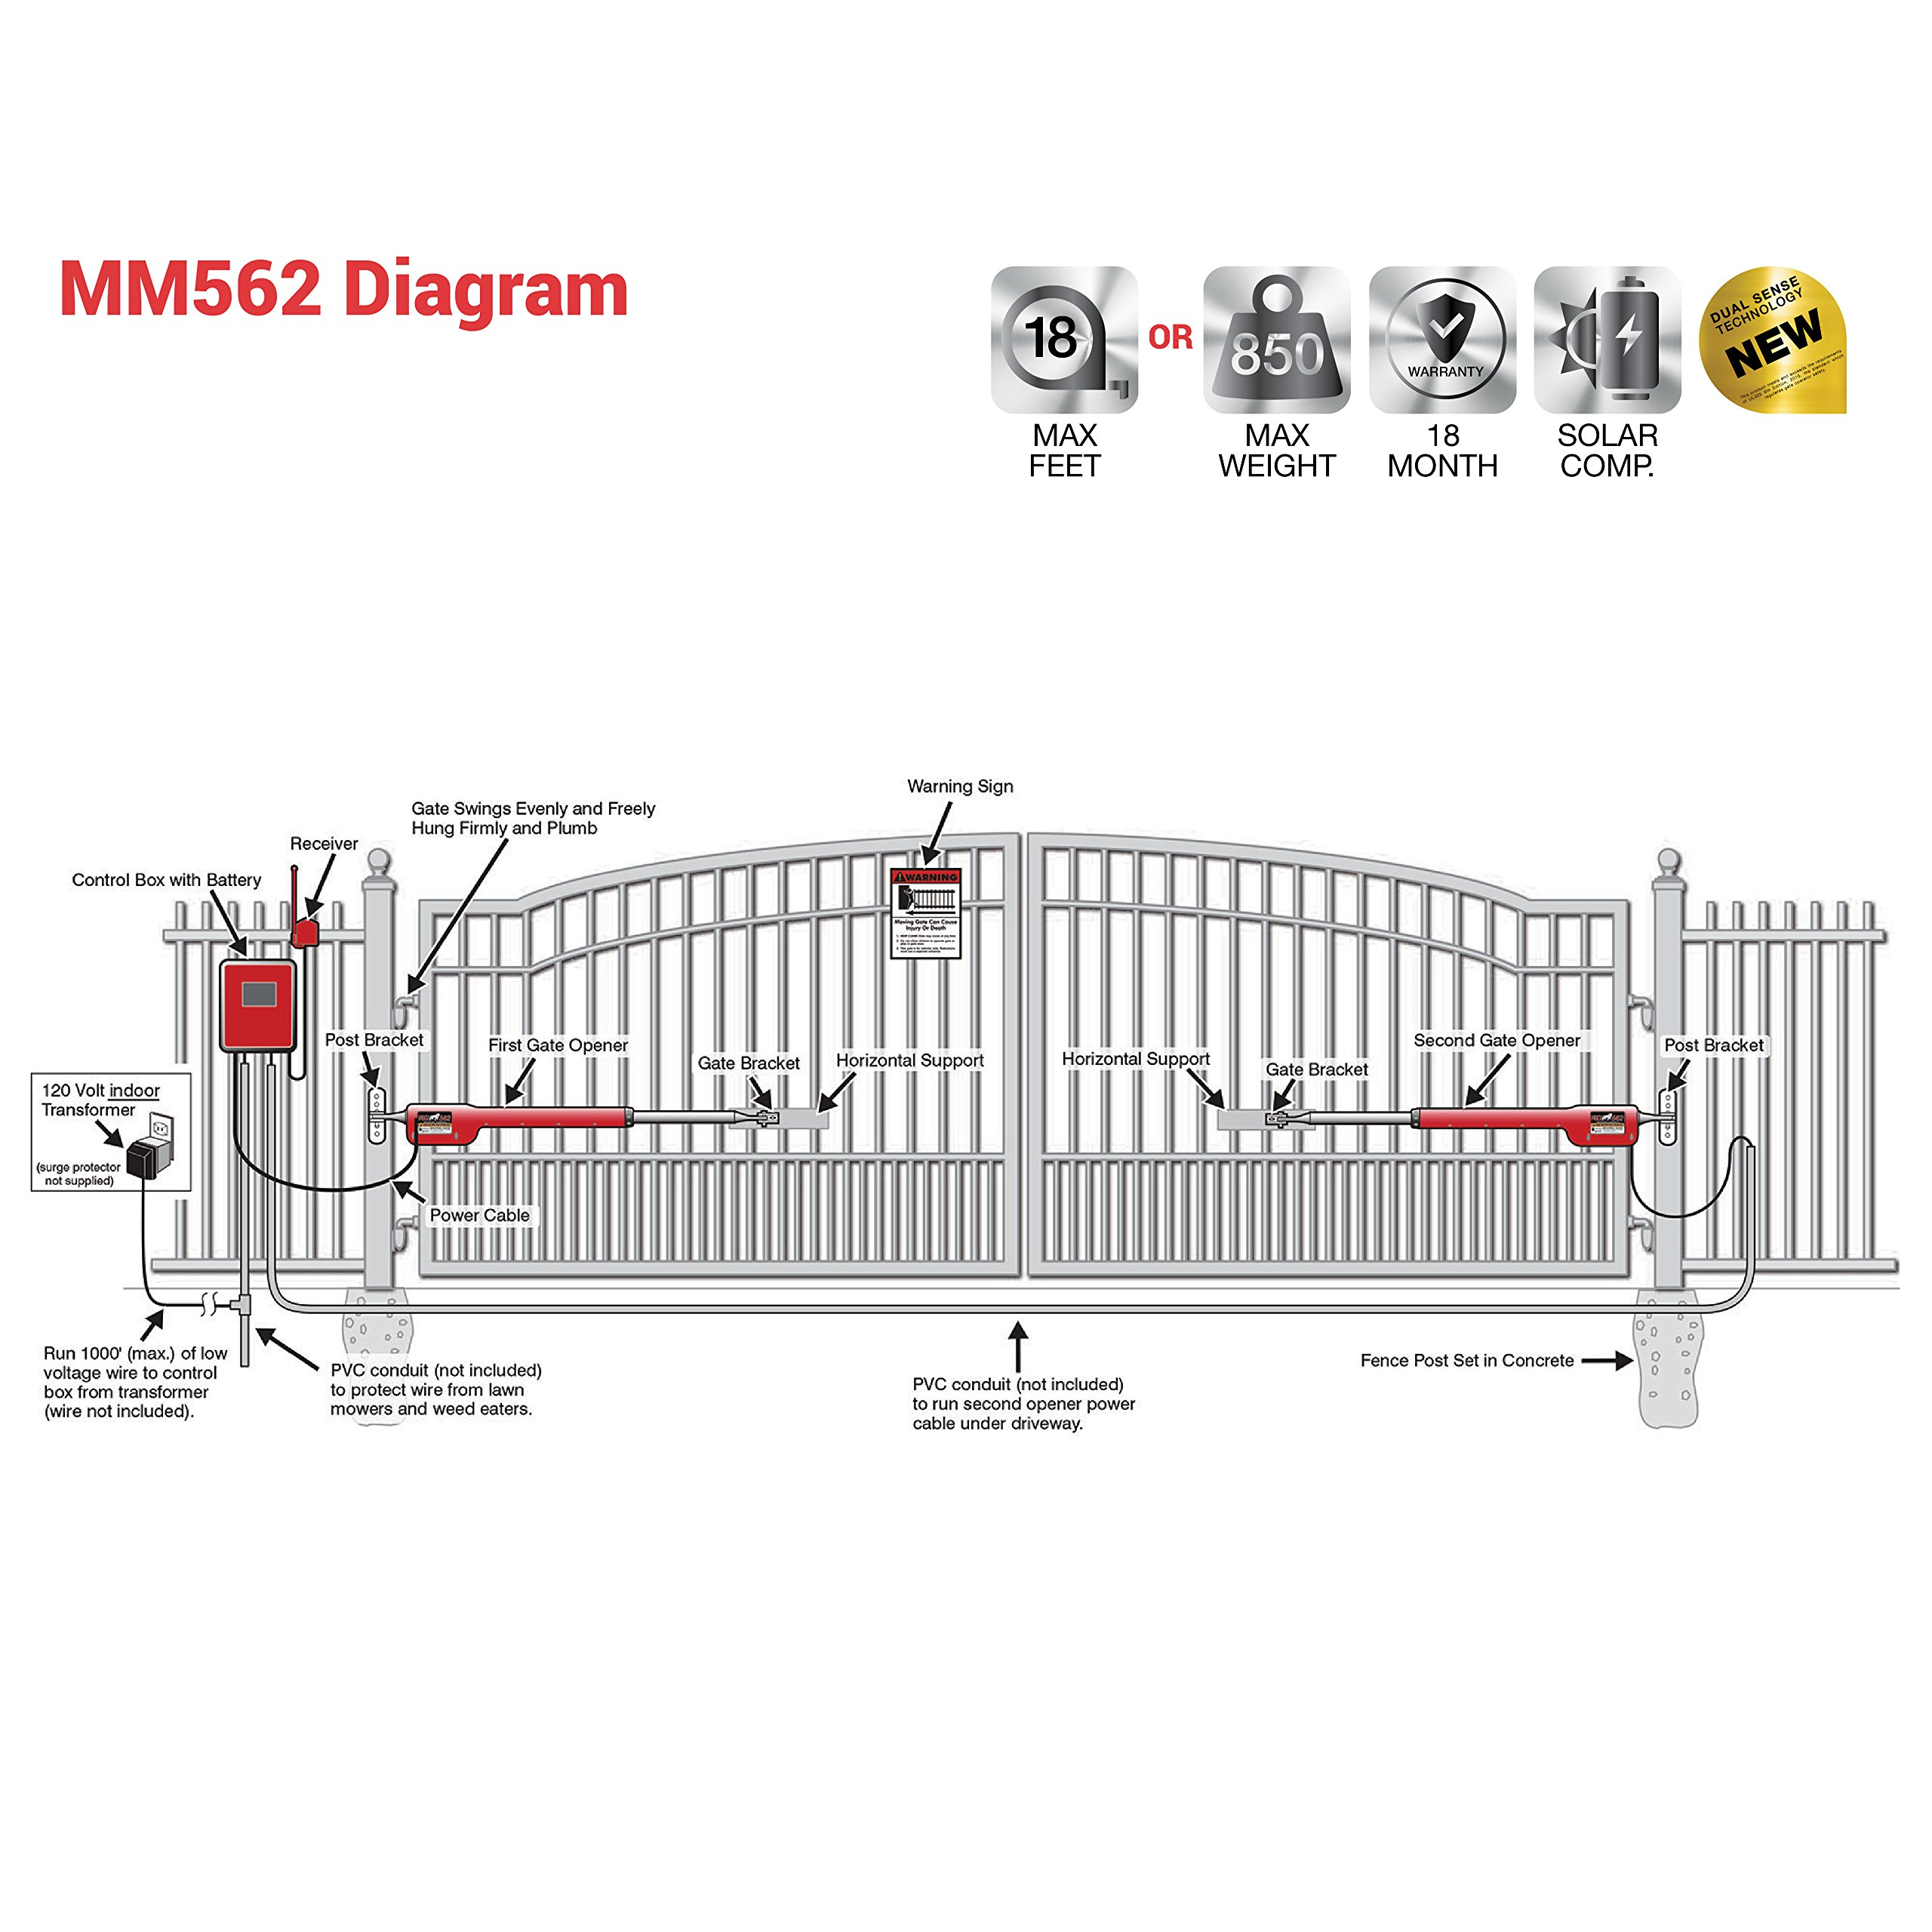 Mighty Mule MM562 Automatic Gate Opener for Heavy Duty Dual Swing Gates for 18' Long or 850 lb by Mighty Mule (Image #7)